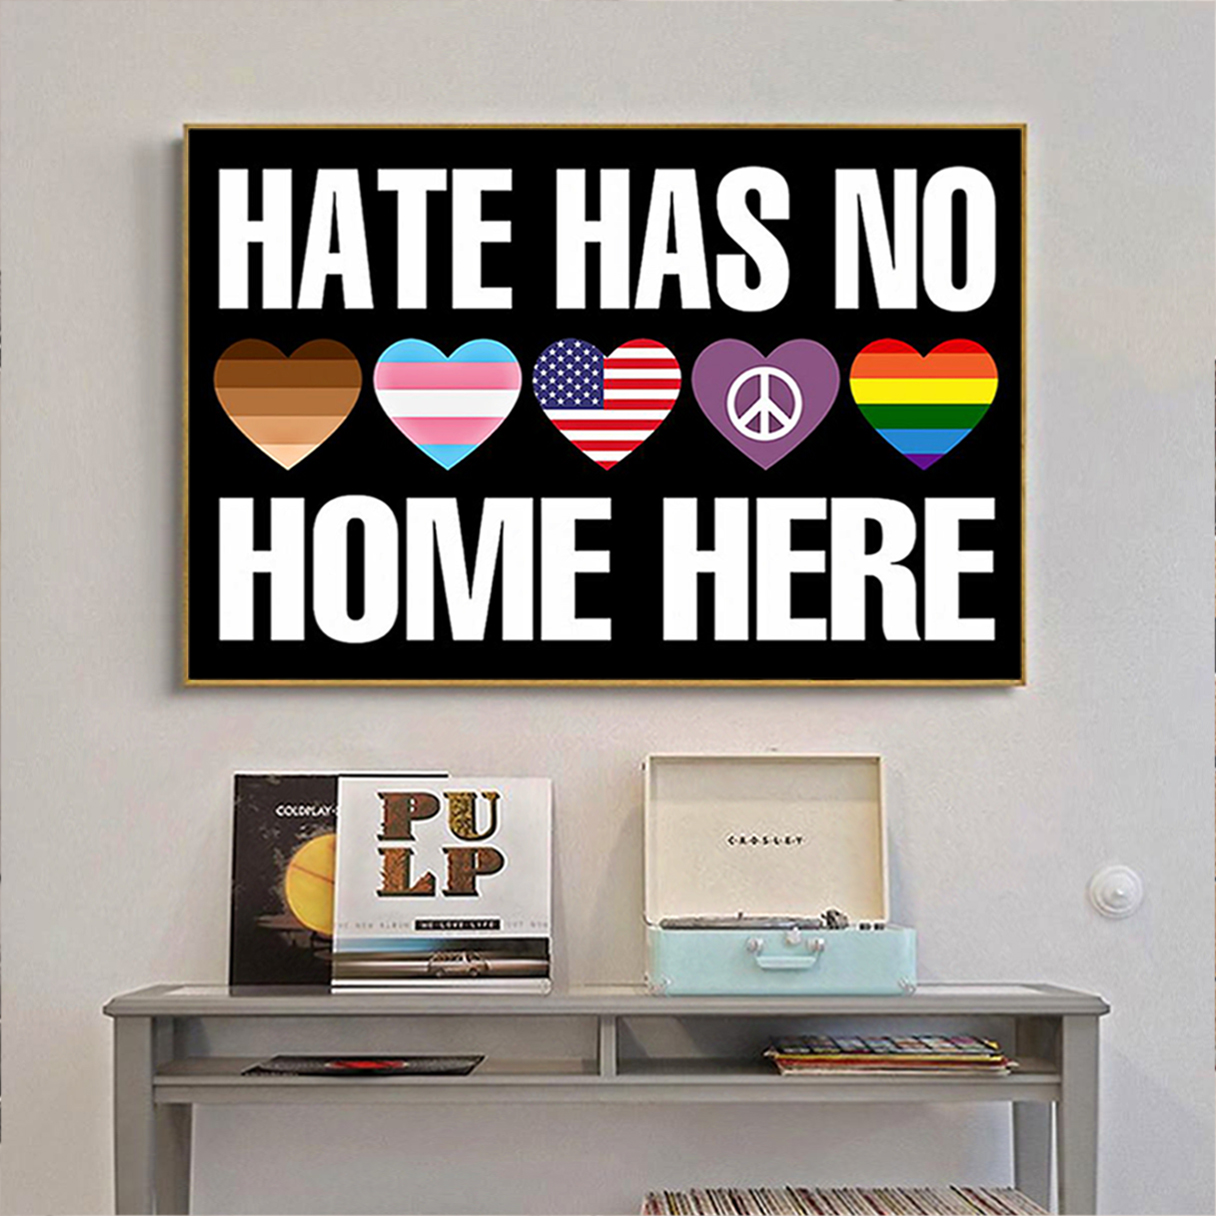 Hate has no home here poster A2